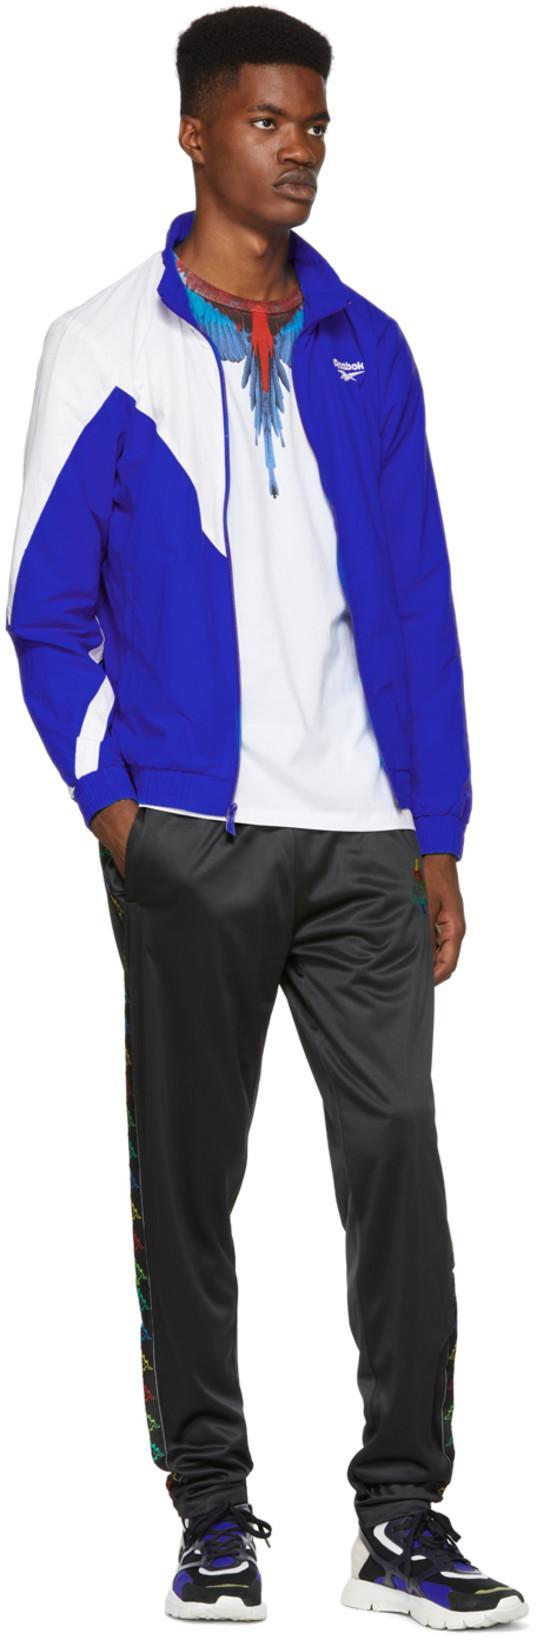 872f1085 Reebok Classics Blue And White Lf Track Jacket | ModeSens